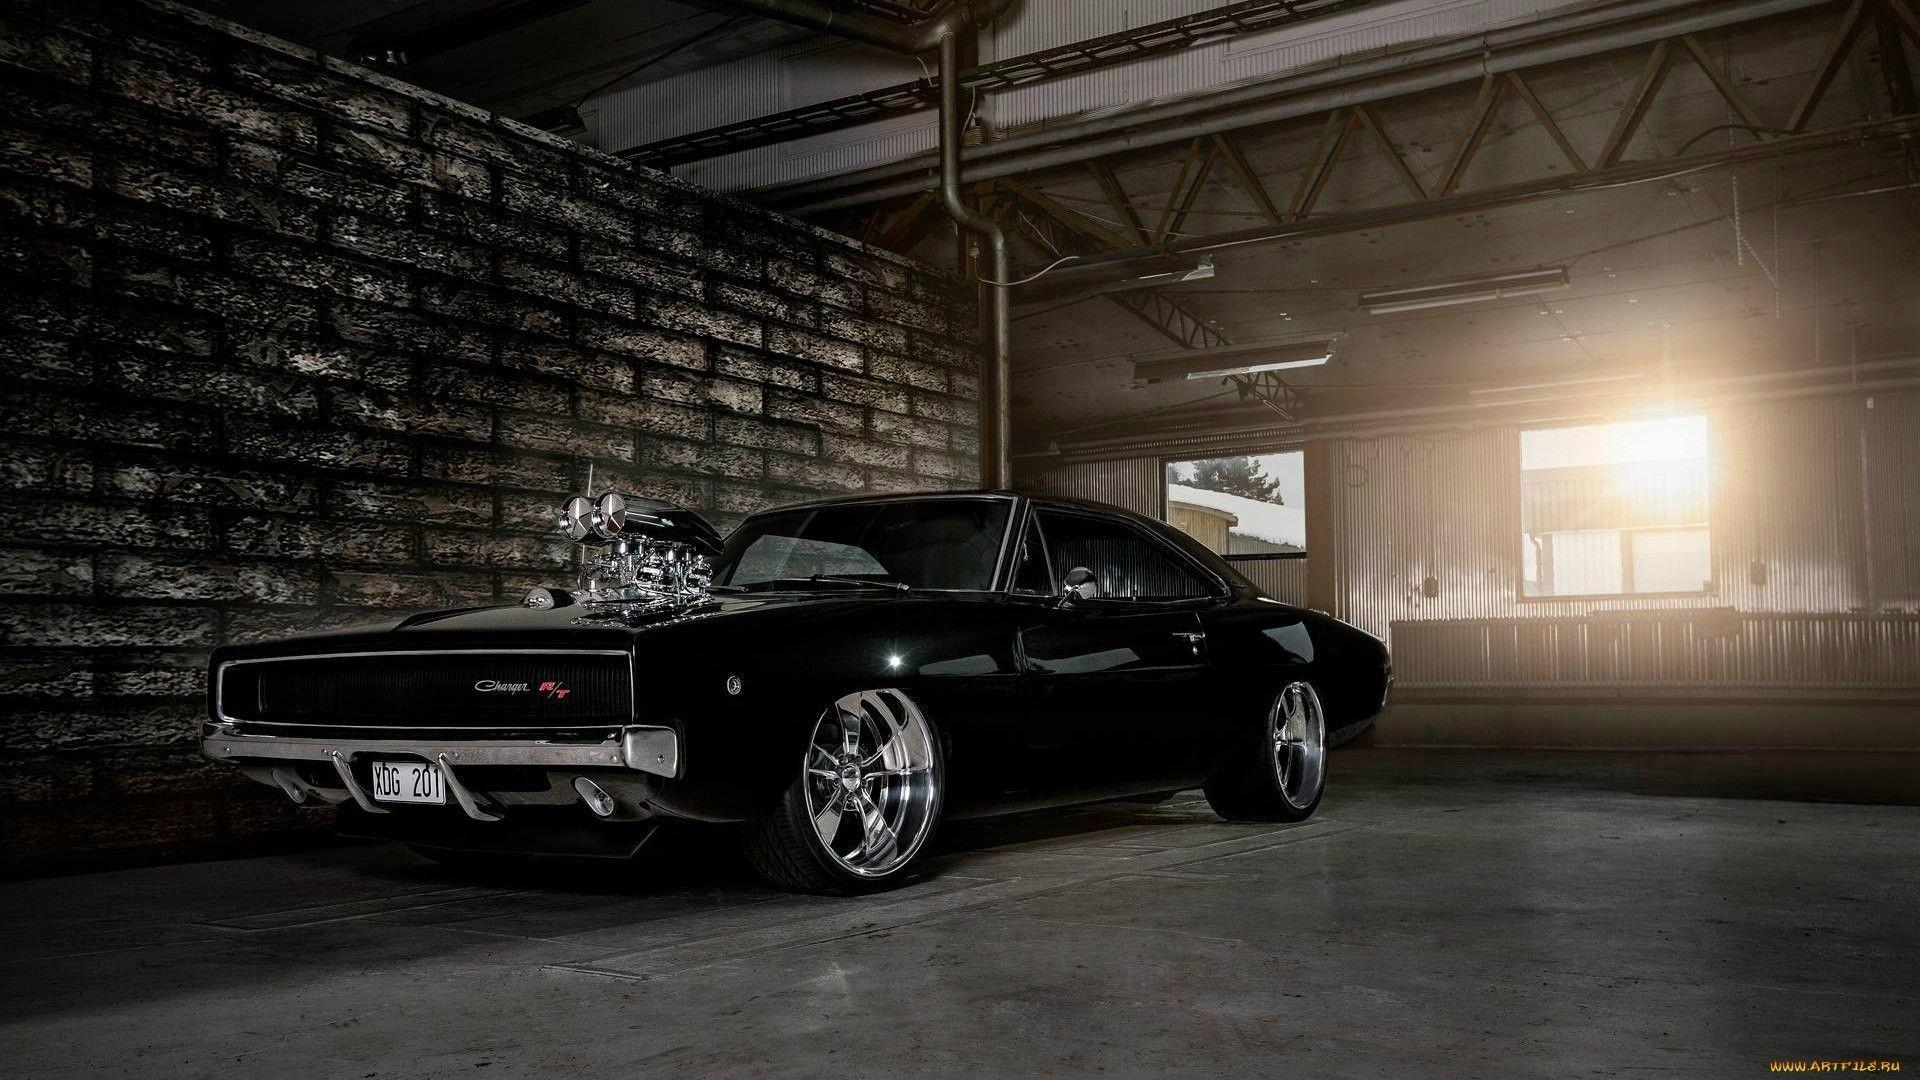 Dodge Charger Wallpapers - Wallpaper Cave